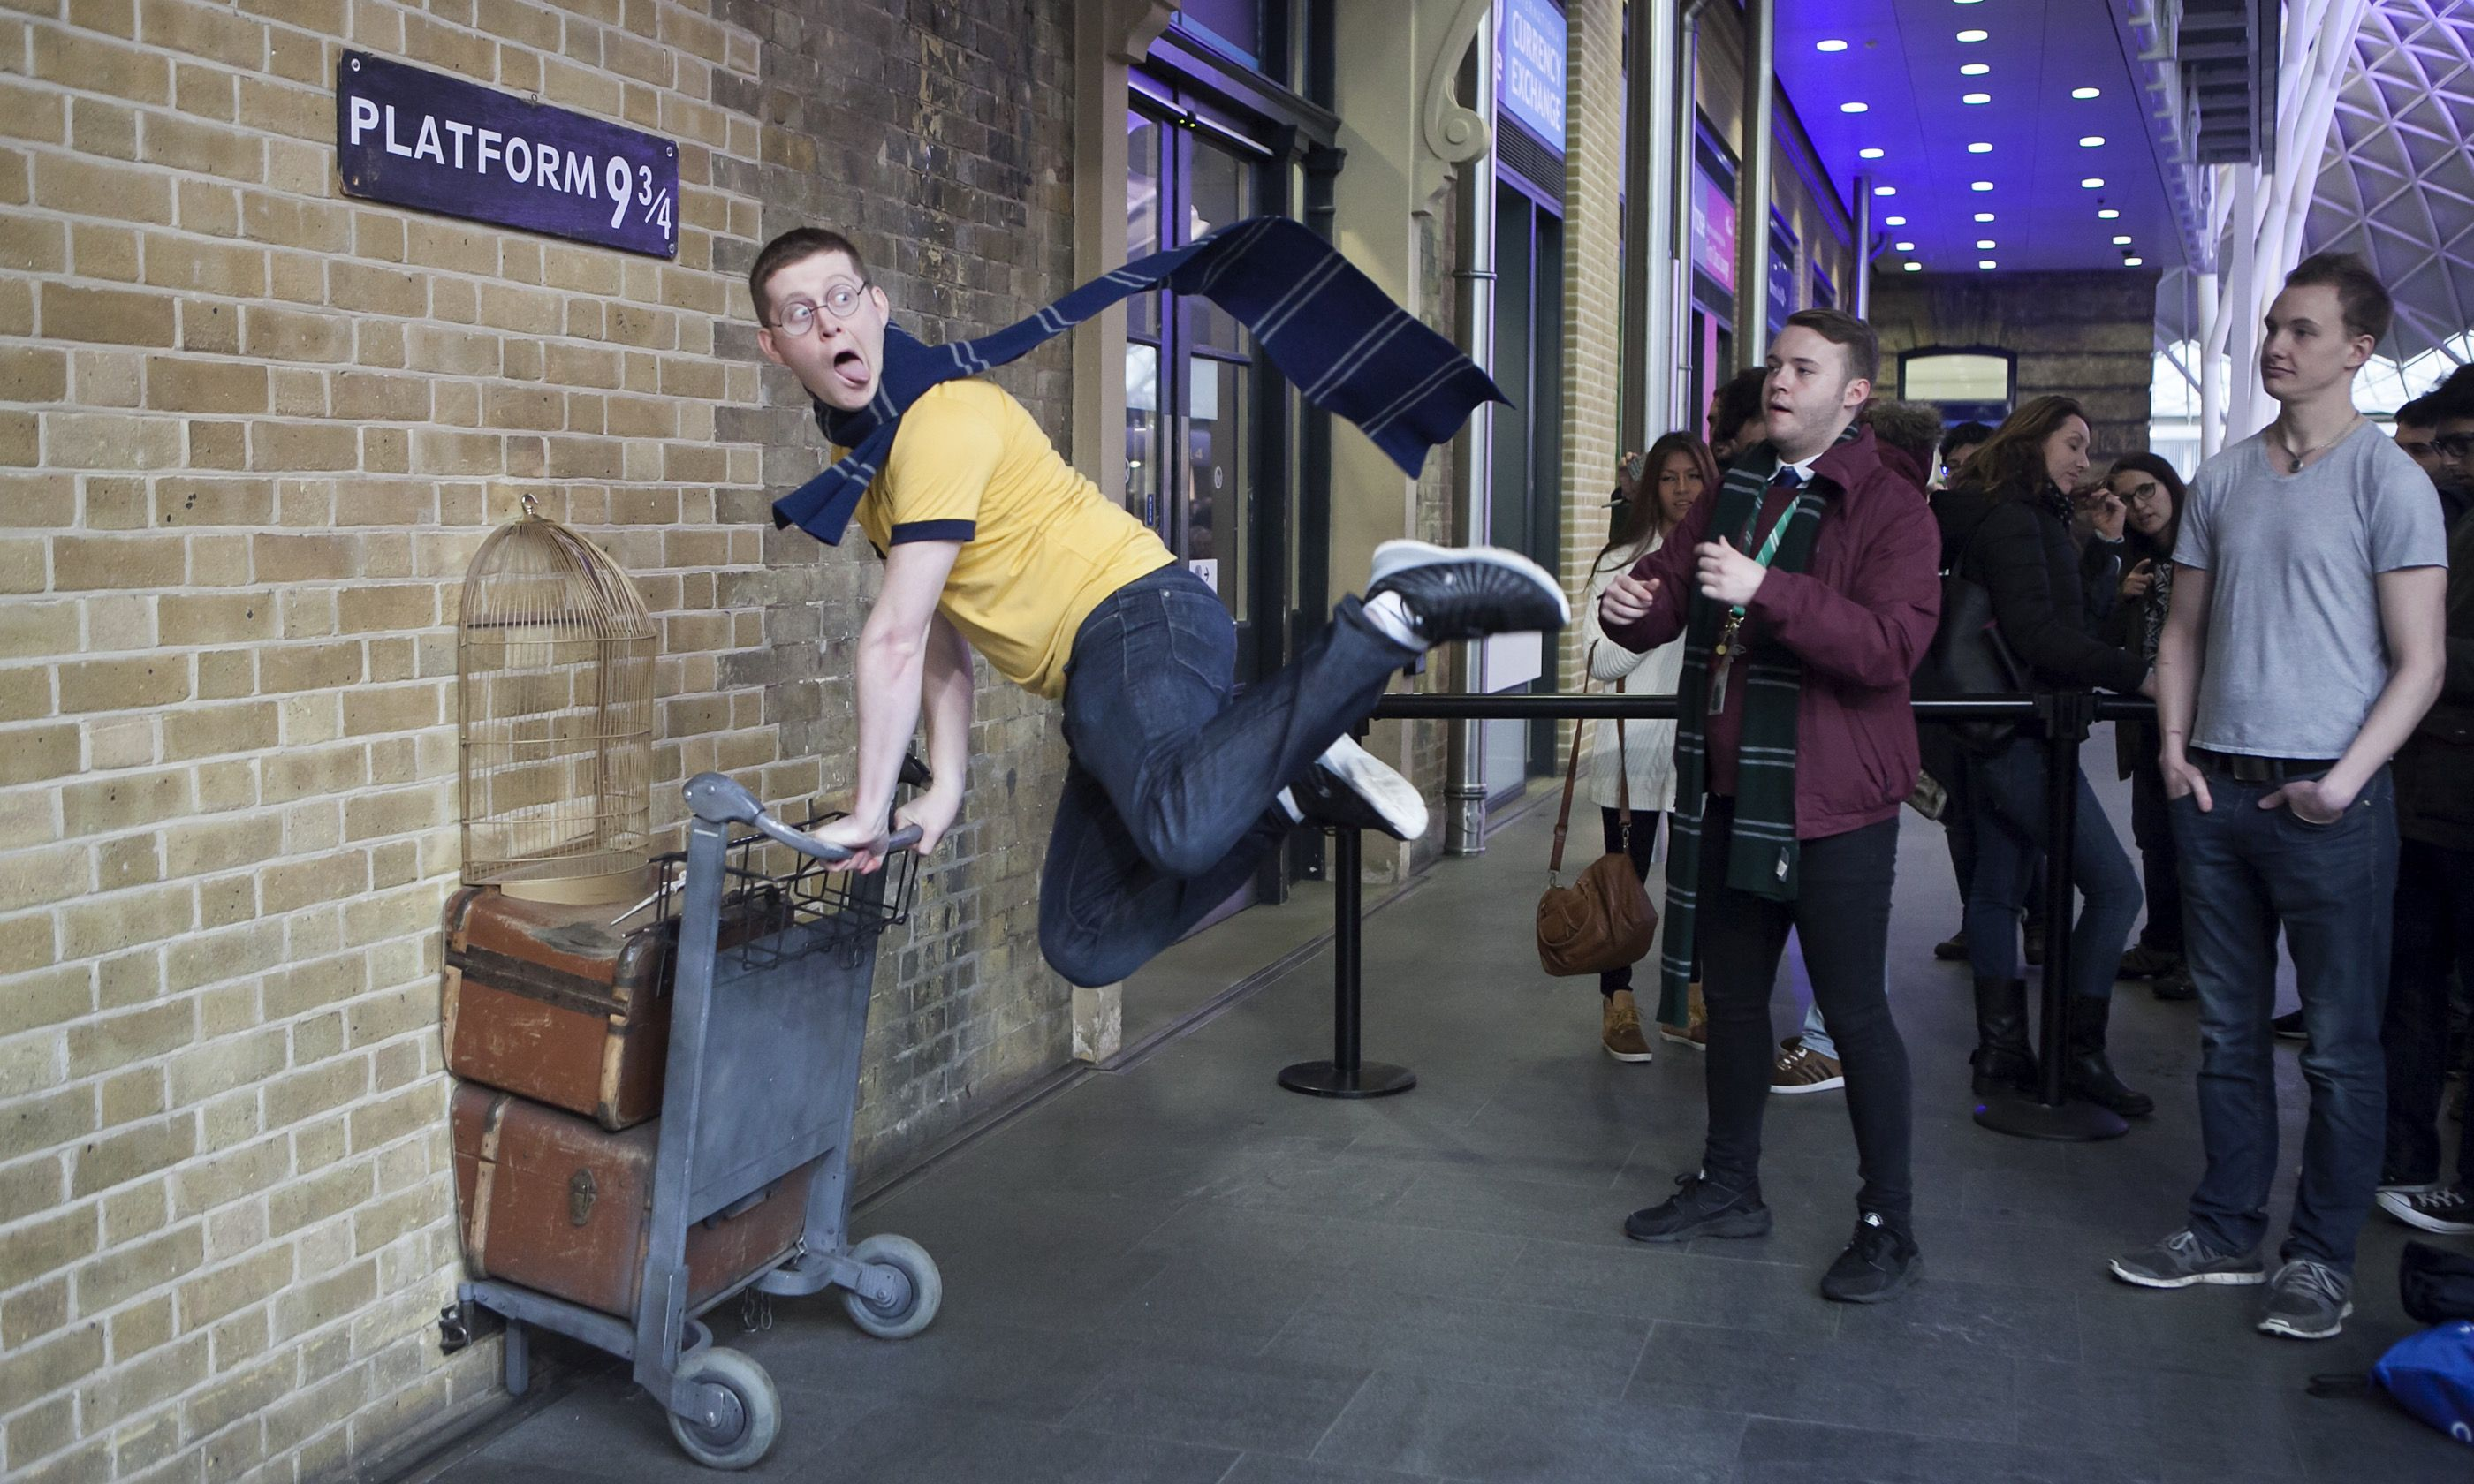 Harry Potter fans posing at Platform 9¾ (Dreamstime)